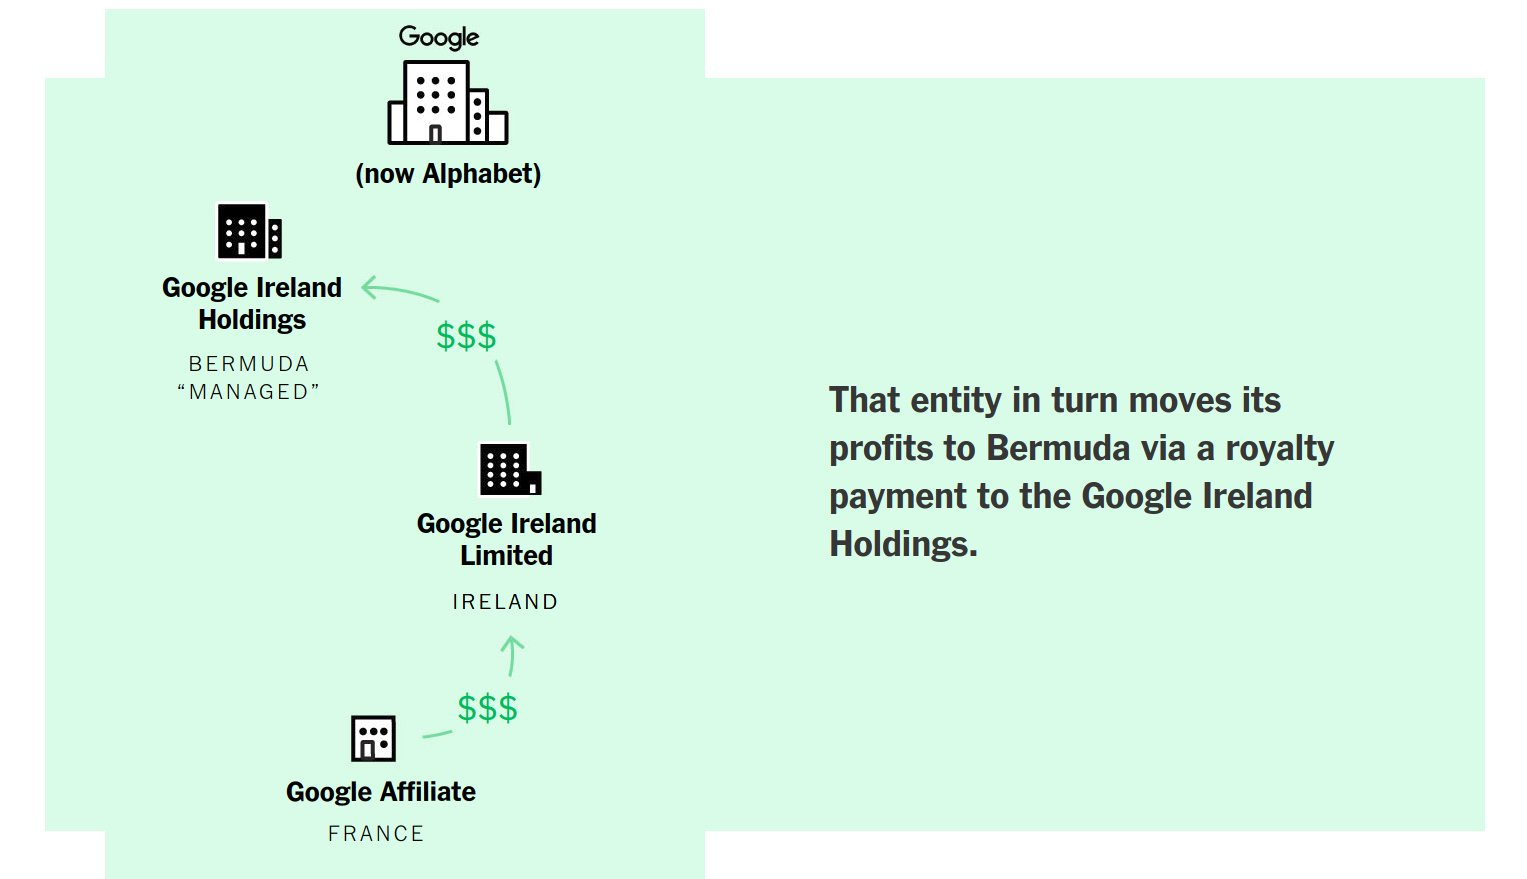 Excellent, plain-language explainer on corporate and 1 percenter tax evasion, with a simple solution